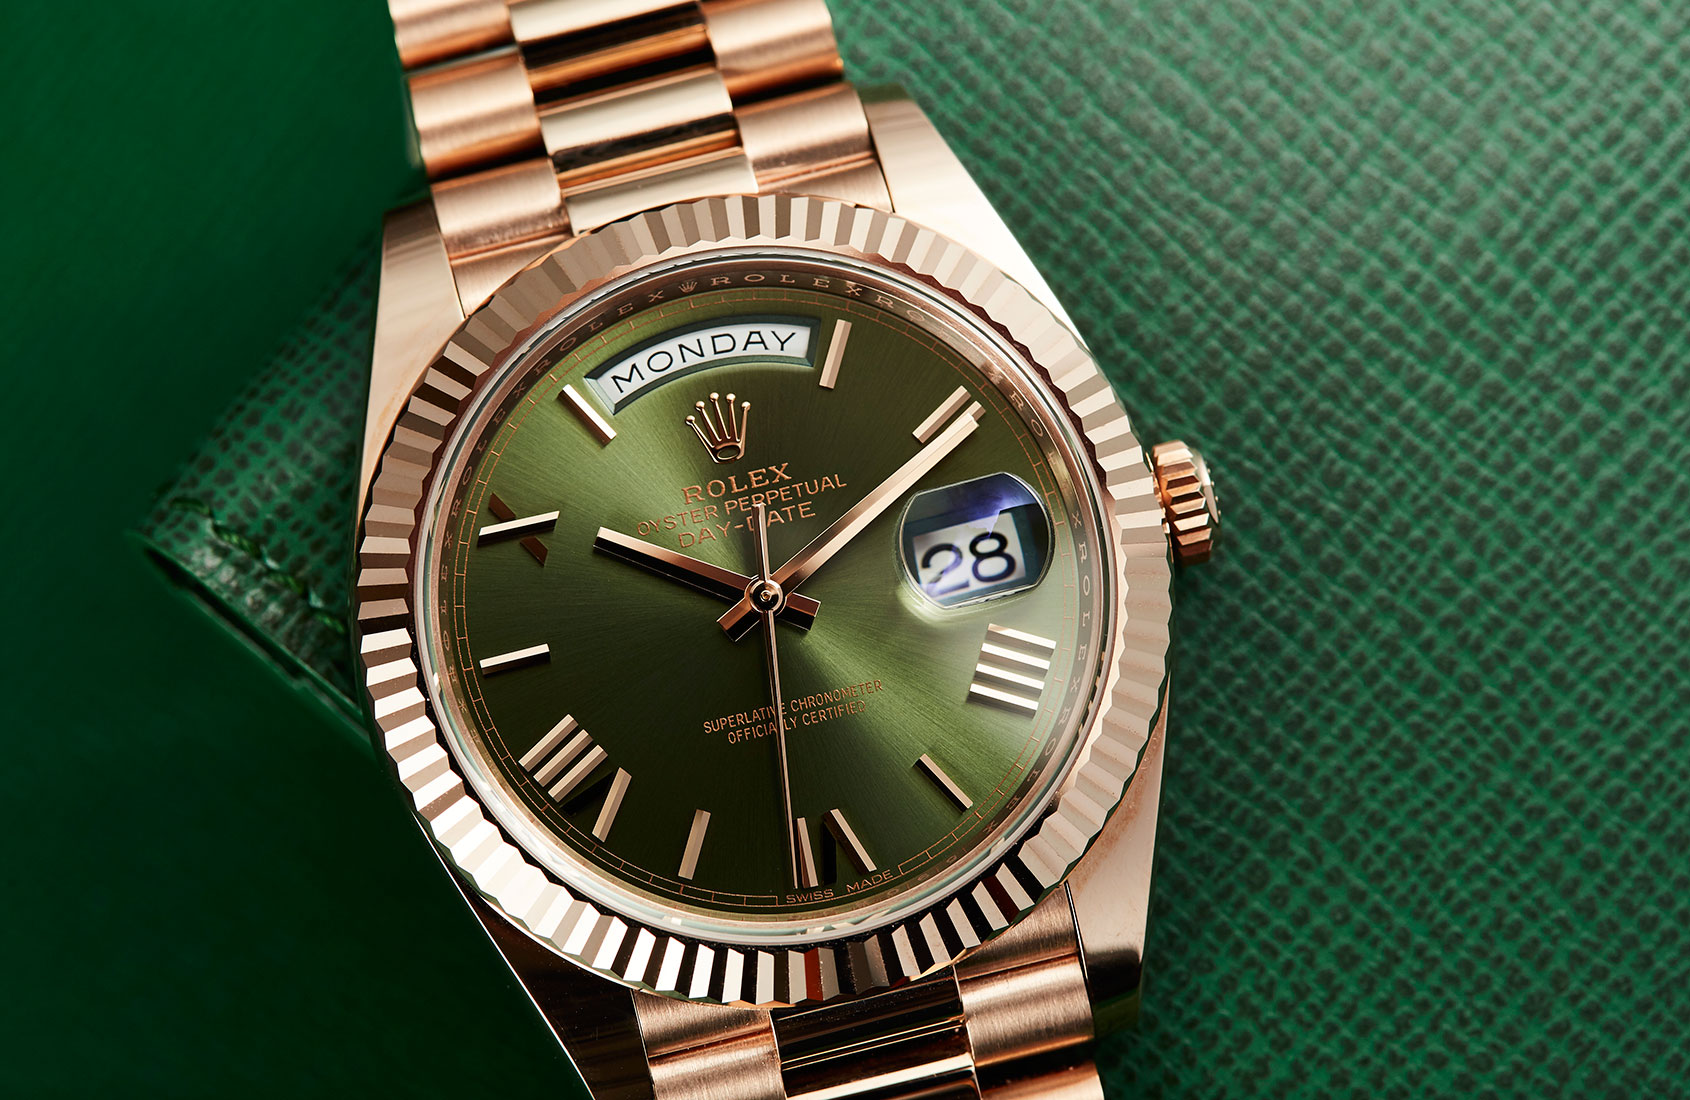 goi-y-lua-chon-dong-ho-rolex-like-auth-11-don-he-them-soi-dong-2